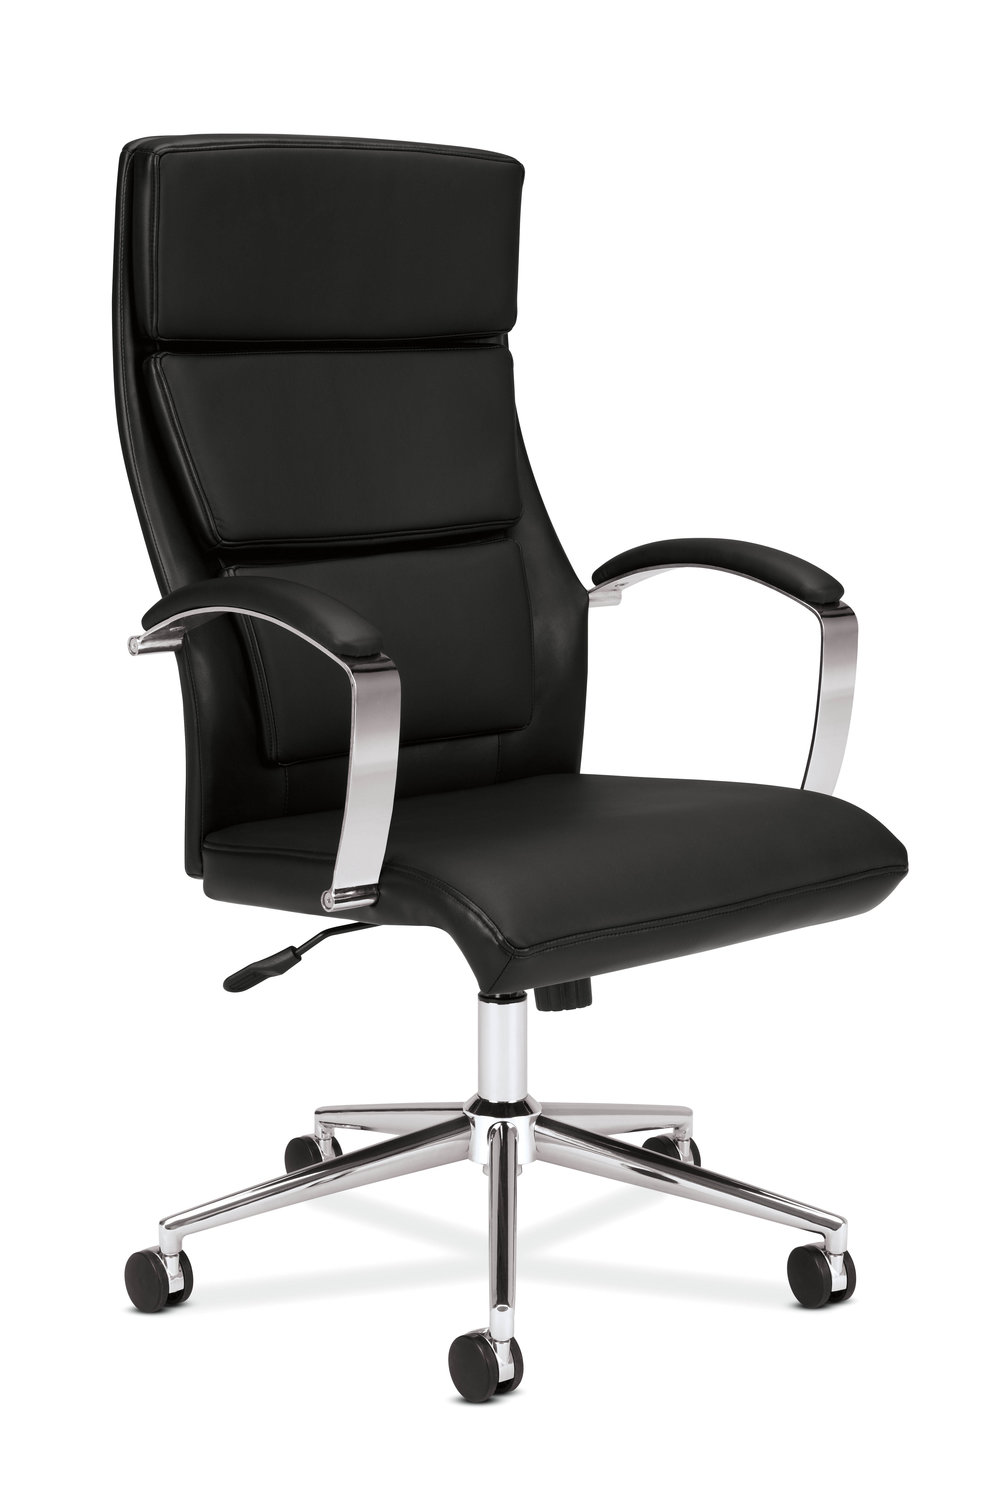 HON VL105 High-Back Chair